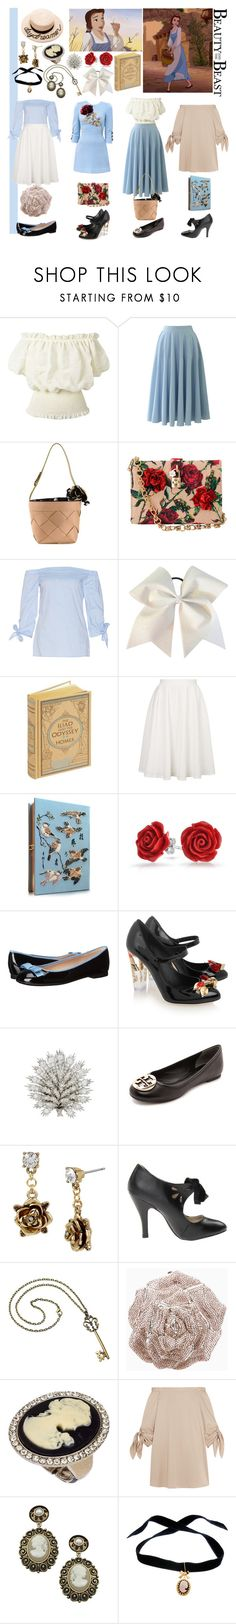 """""""Belle"""" by madameguillotine ❤ liked on Polyvore featuring Dolce&Gabbana, Chicwish, Moschino, Topshop, Olympia Le-Tan, Bling Jewelry, Disney, Furla, Tory Burch and Betsey Johnson"""